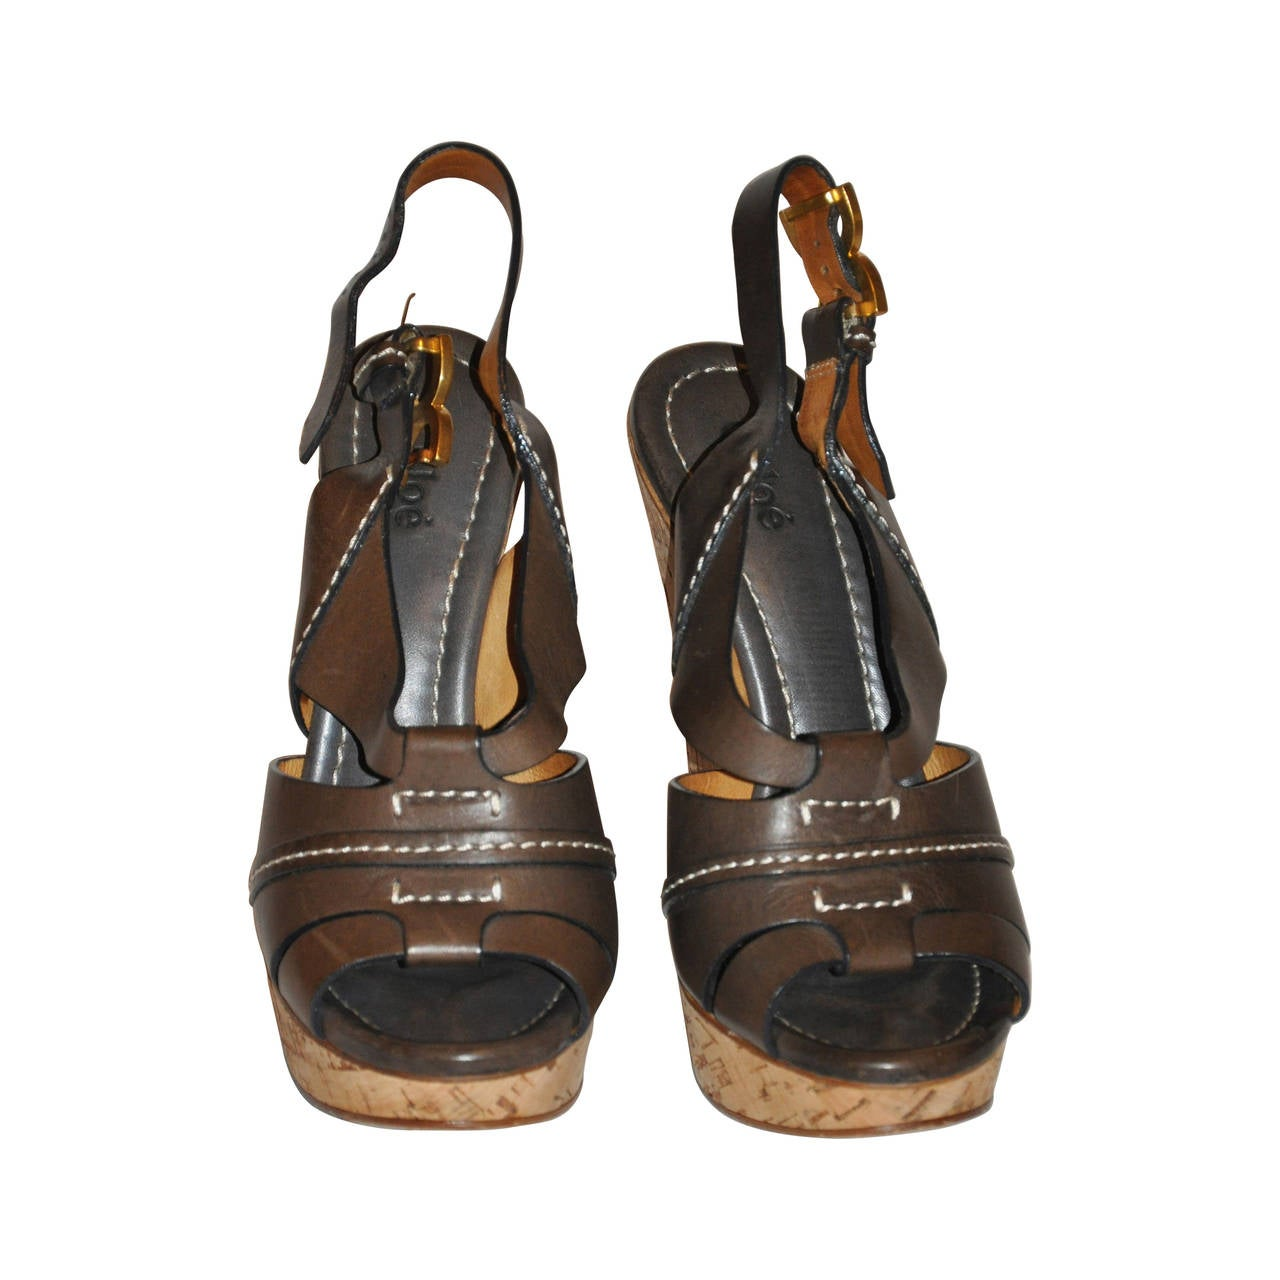 Chloe Warm Brown Calfskin Wedge Sandals with Detailed Top-Stitching